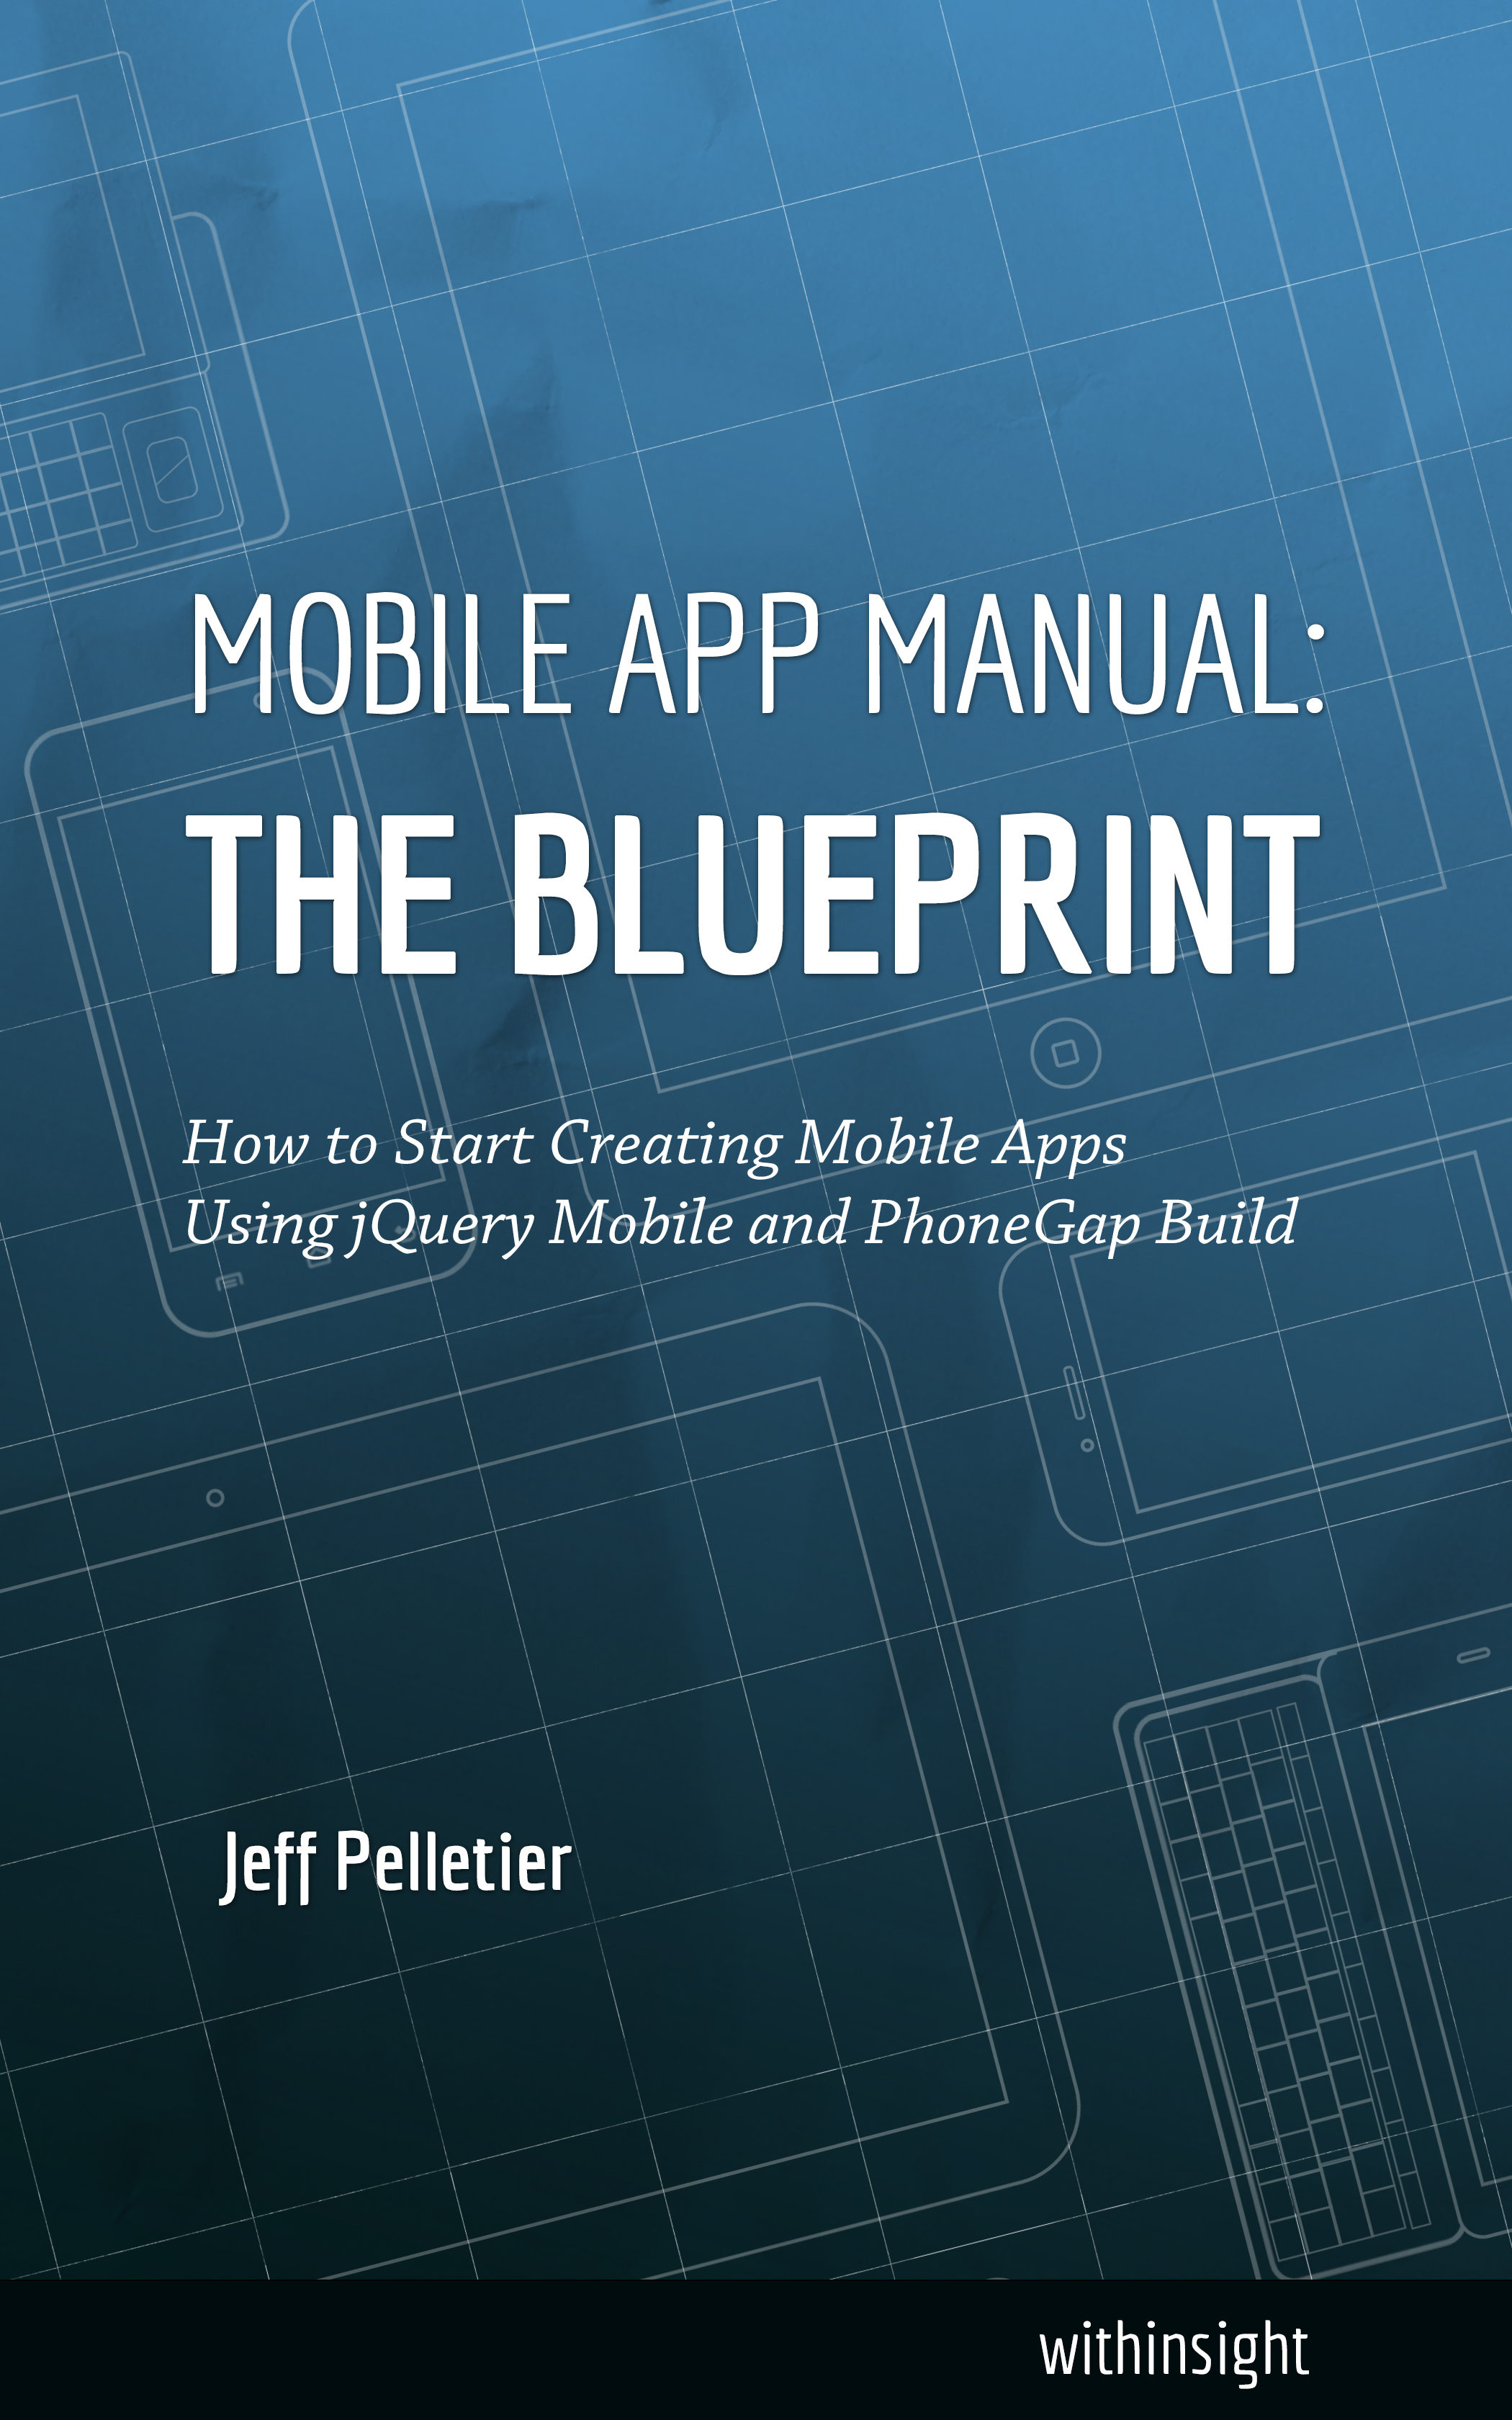 Mobile app manual the blueprint ebook jeff pelletier descargar mobile app manual the blueprint ebook jeff pelletier 9780989072106 malvernweather Gallery